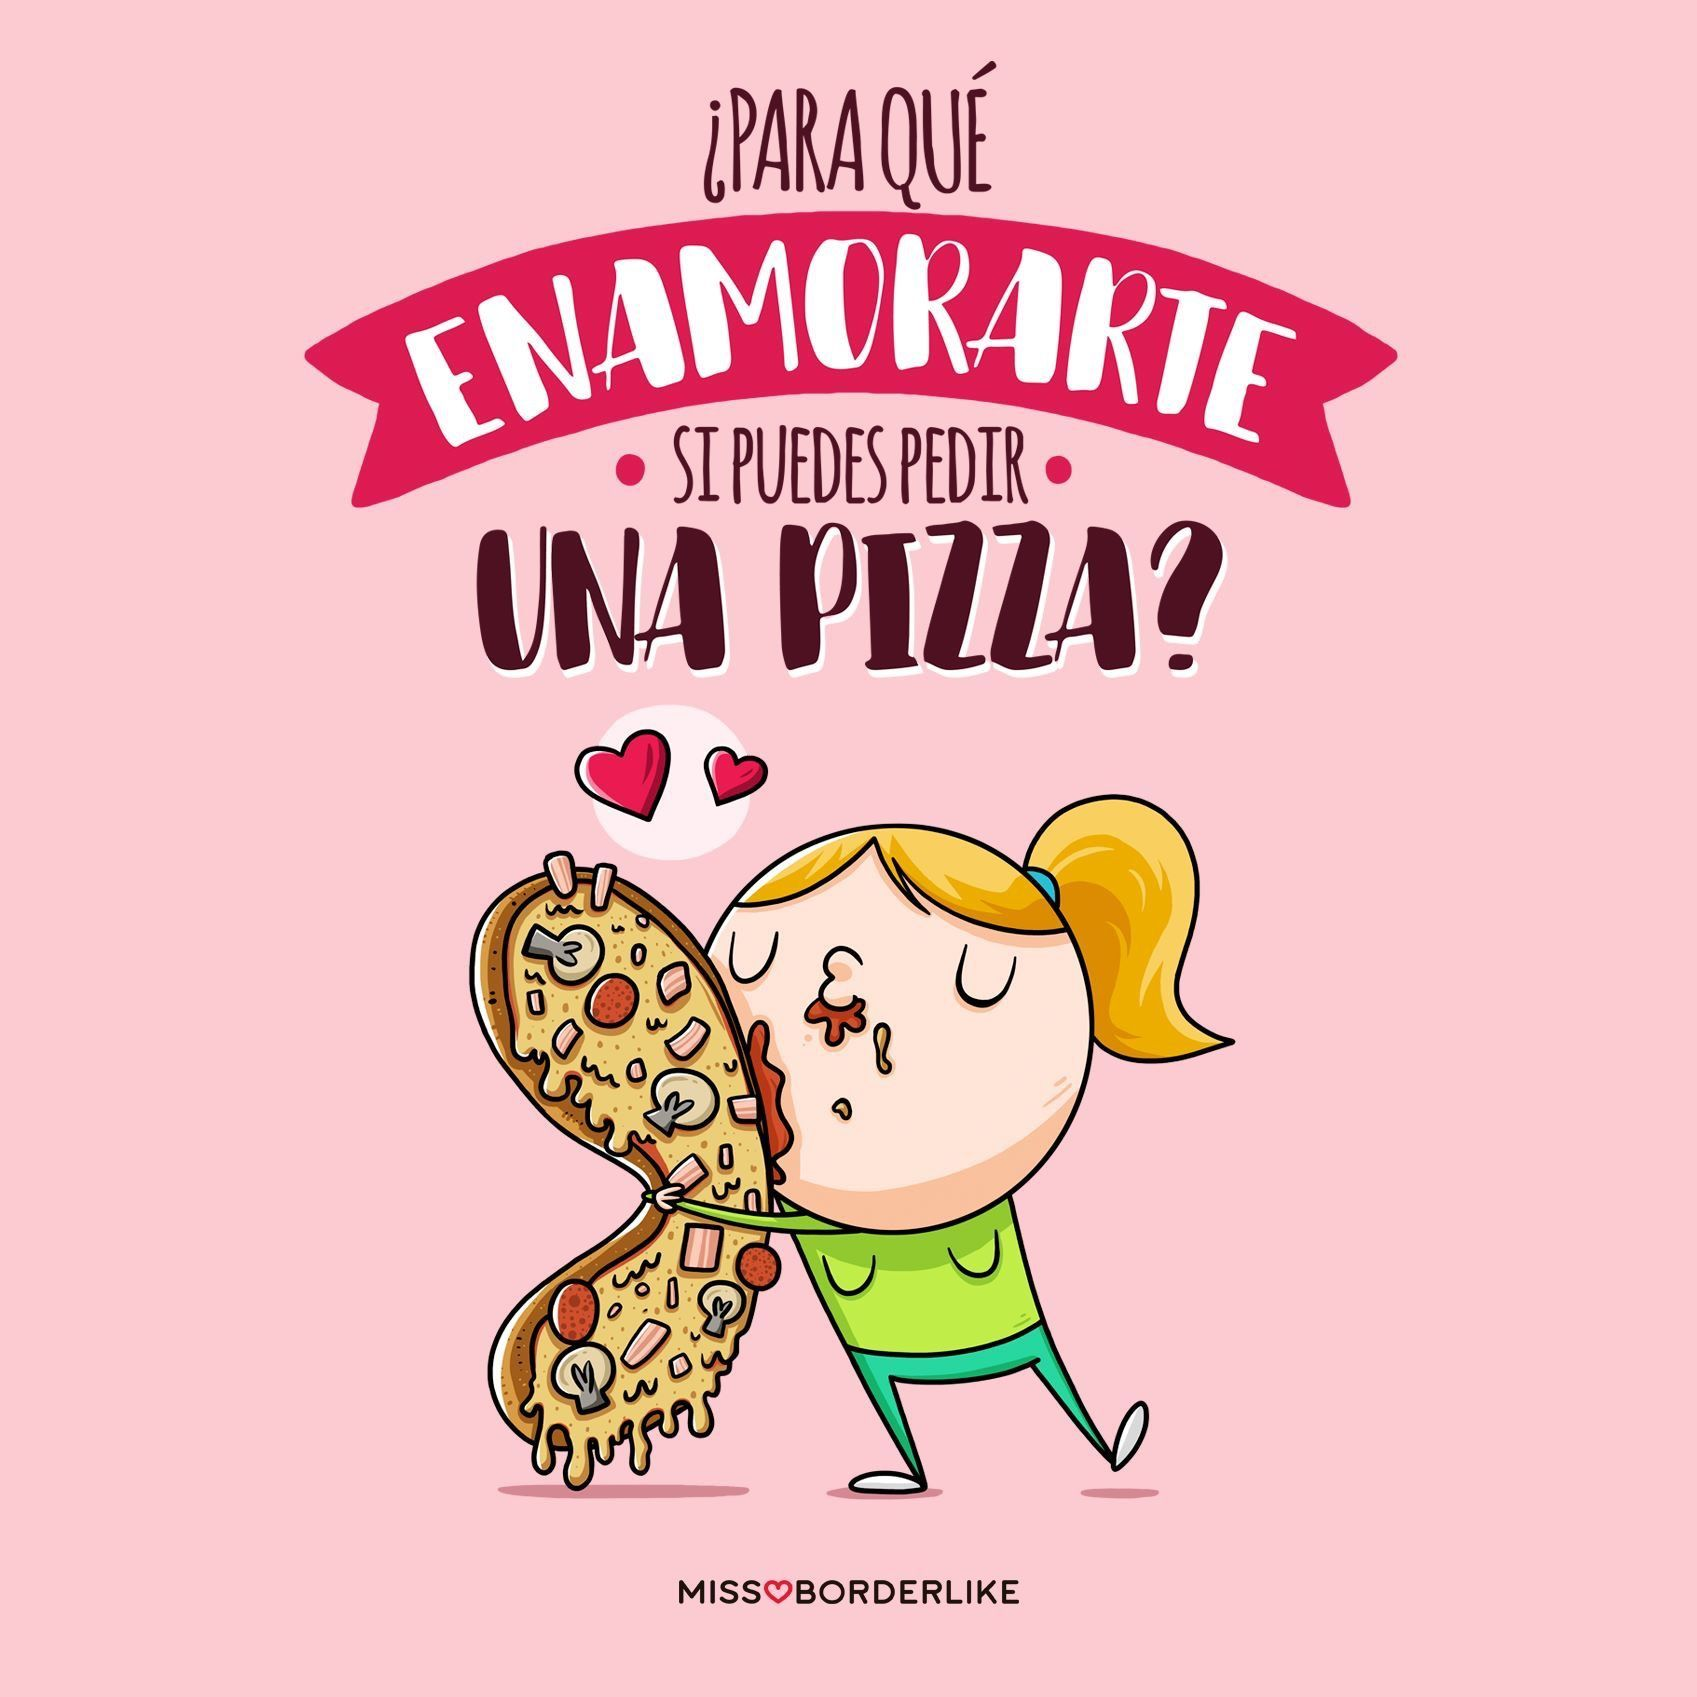 Why fall in love if you can order a pizza? funny funny